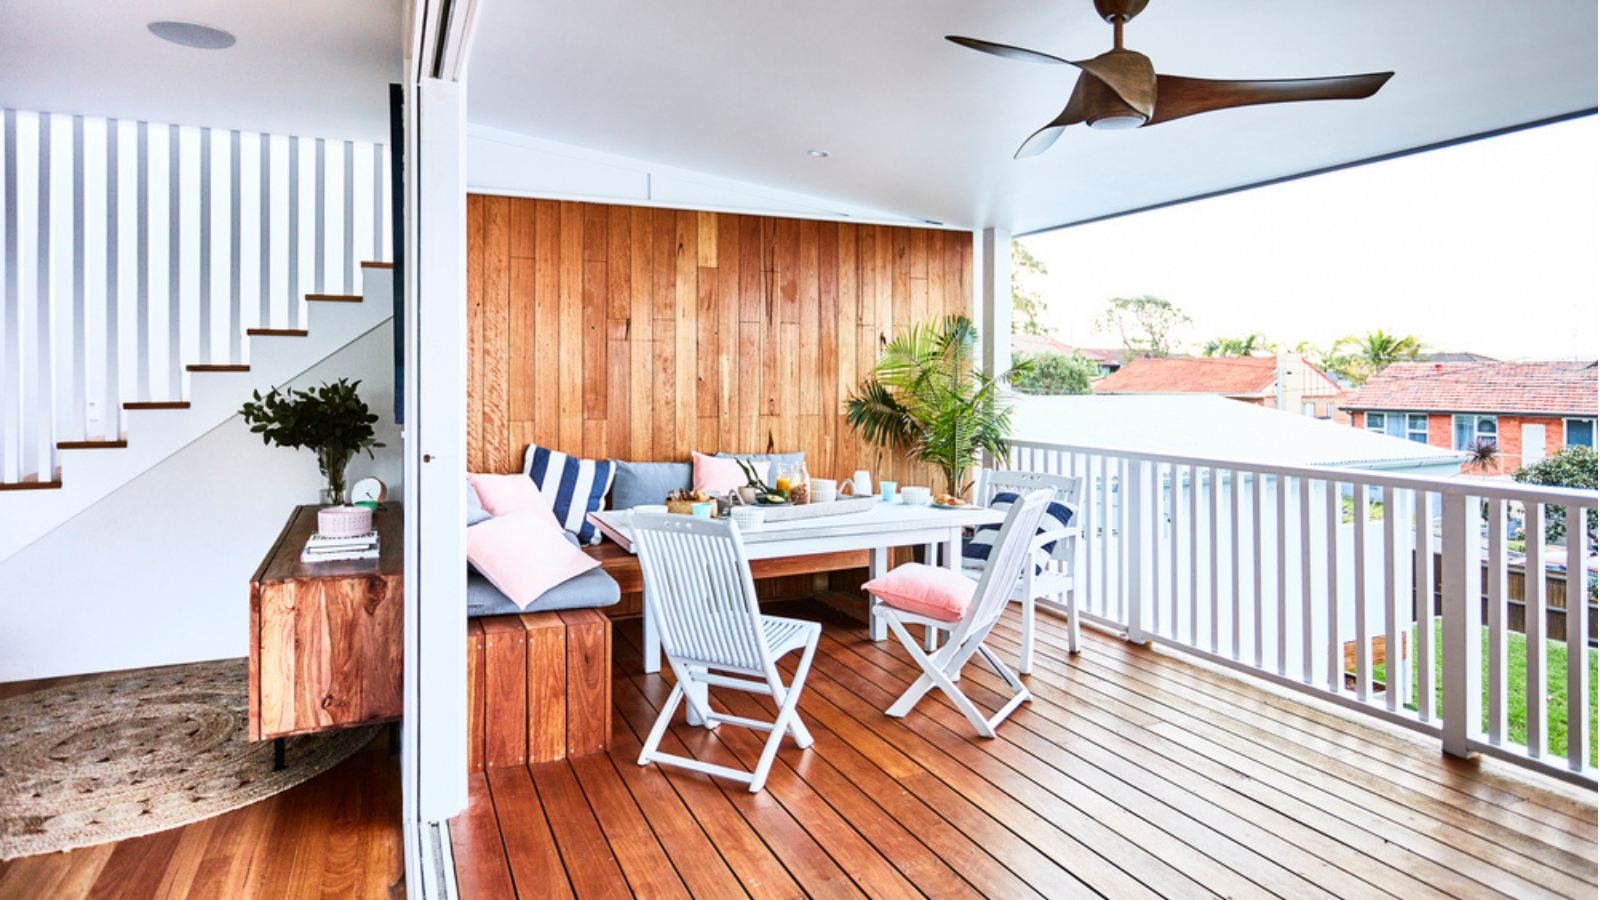 Enjoy your outdoor space, year round